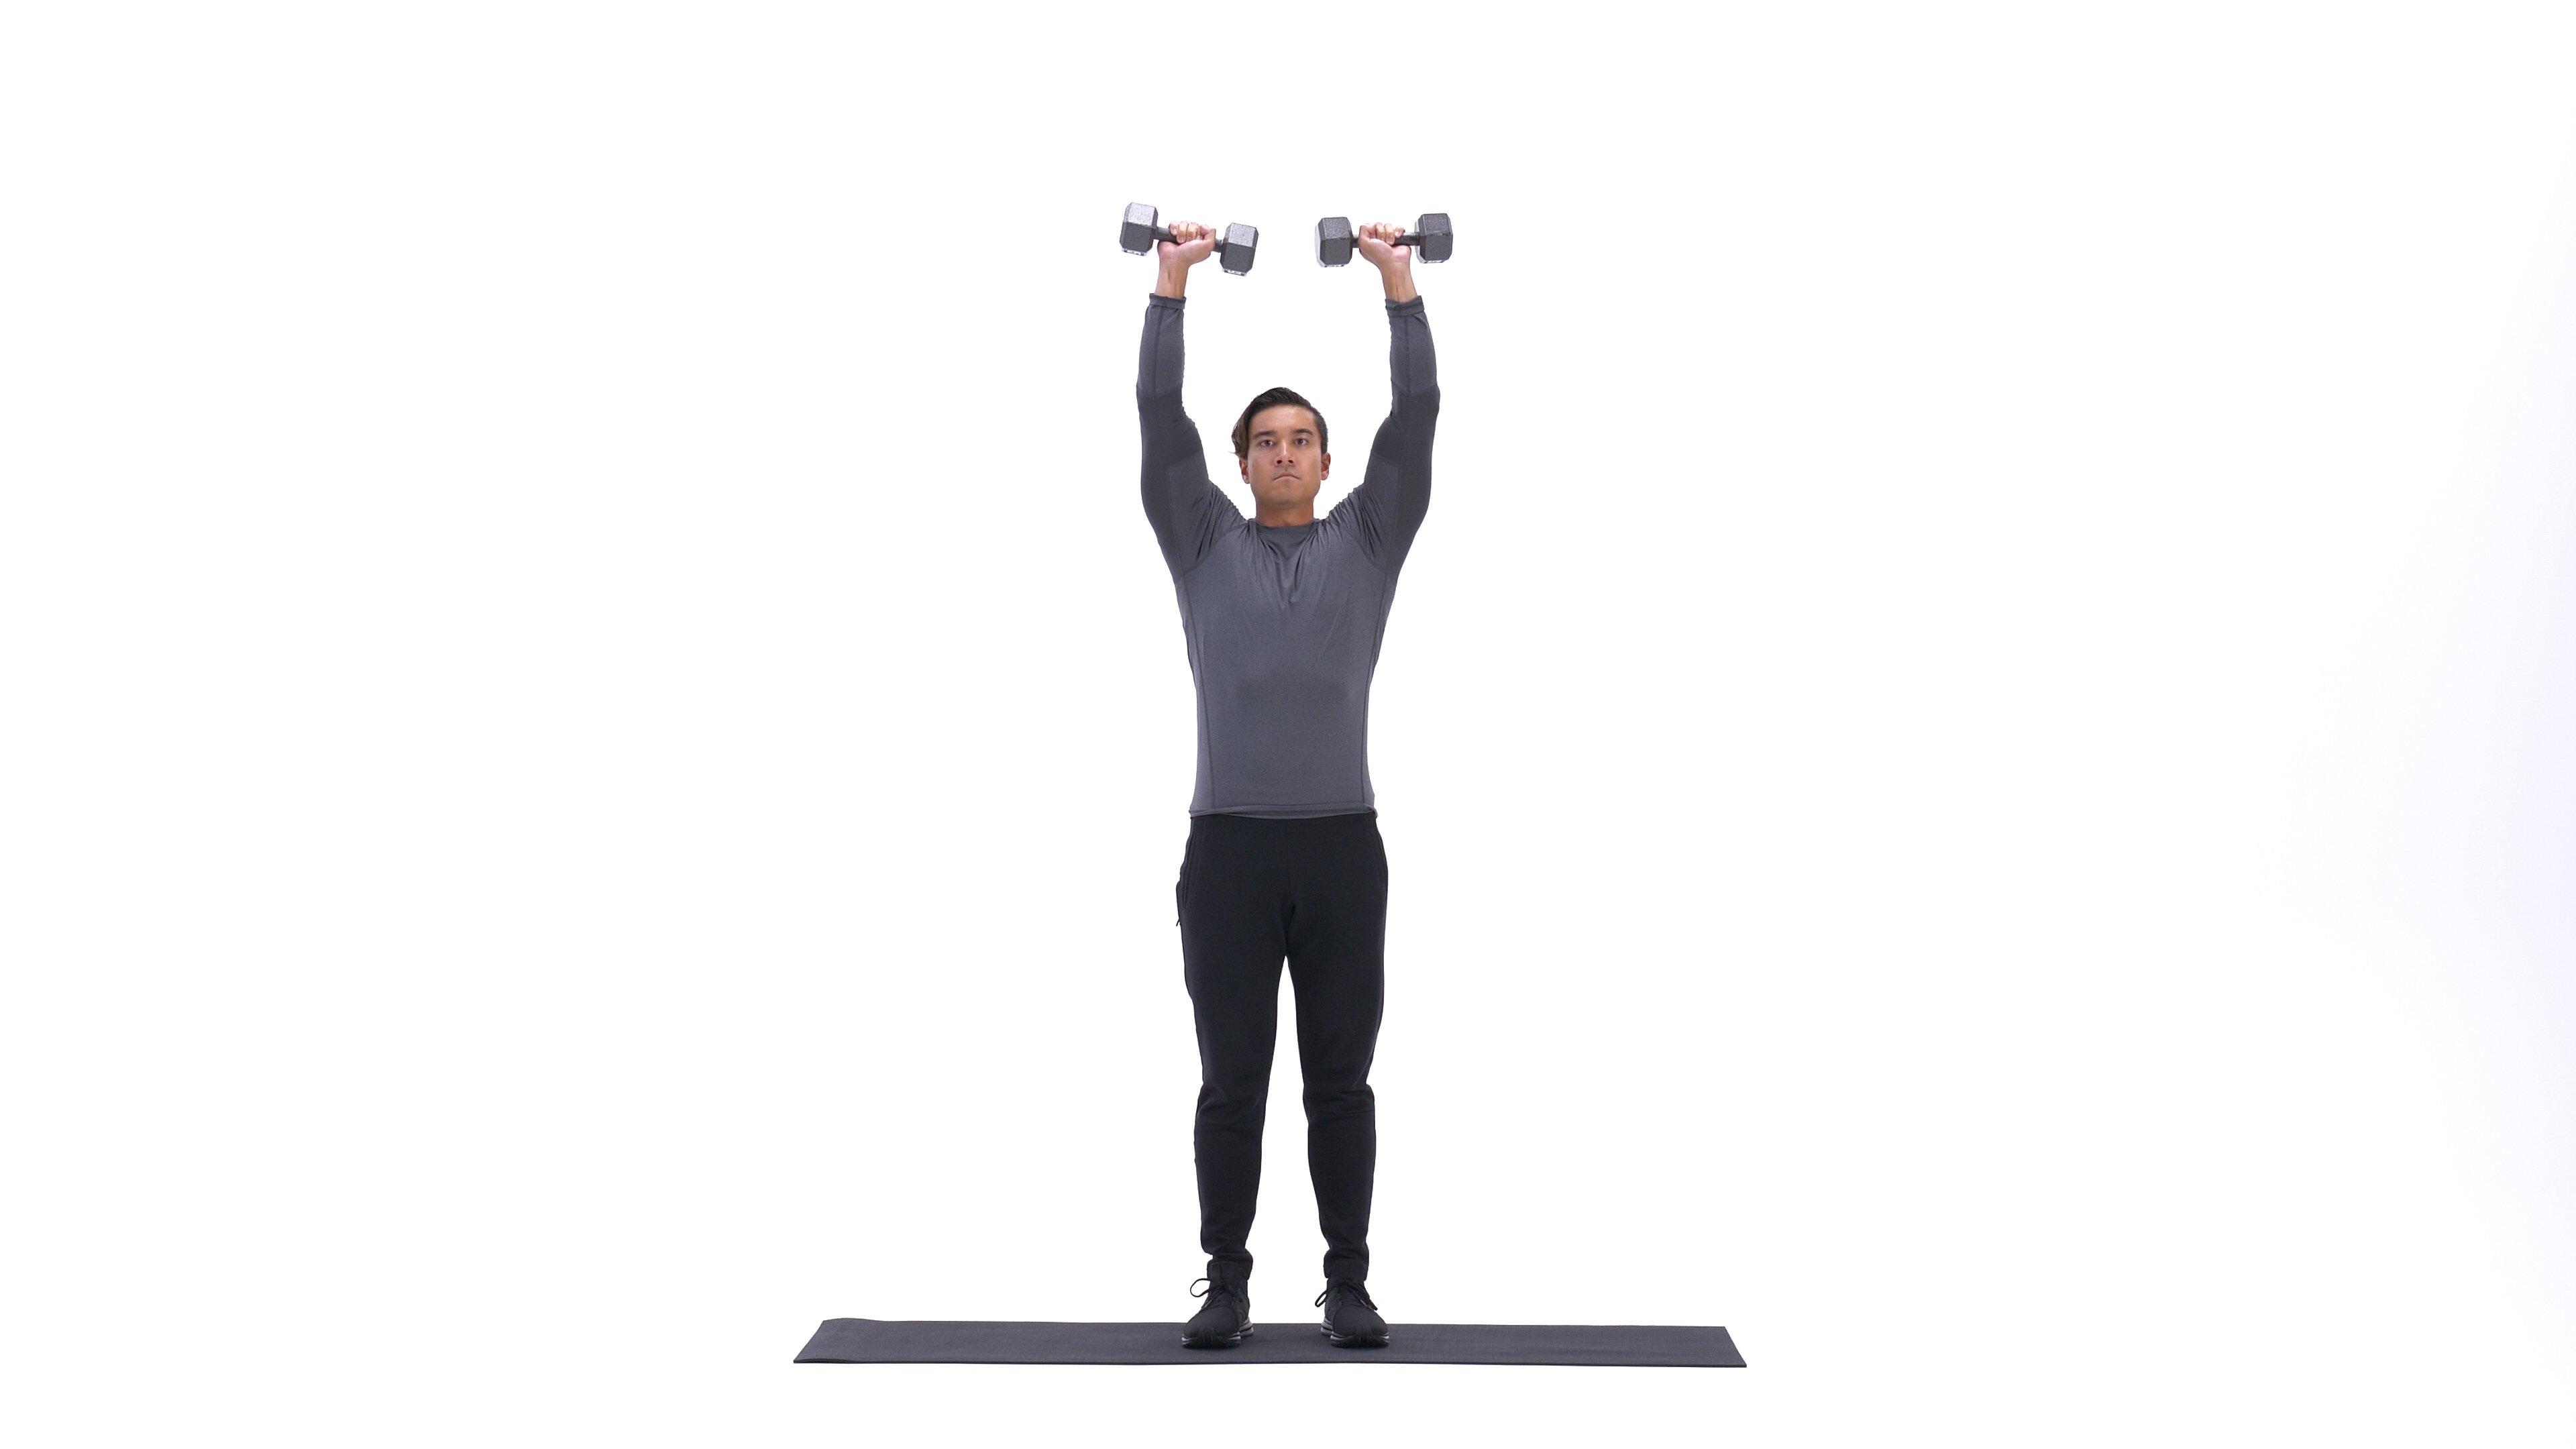 Dumbbell clean and press image